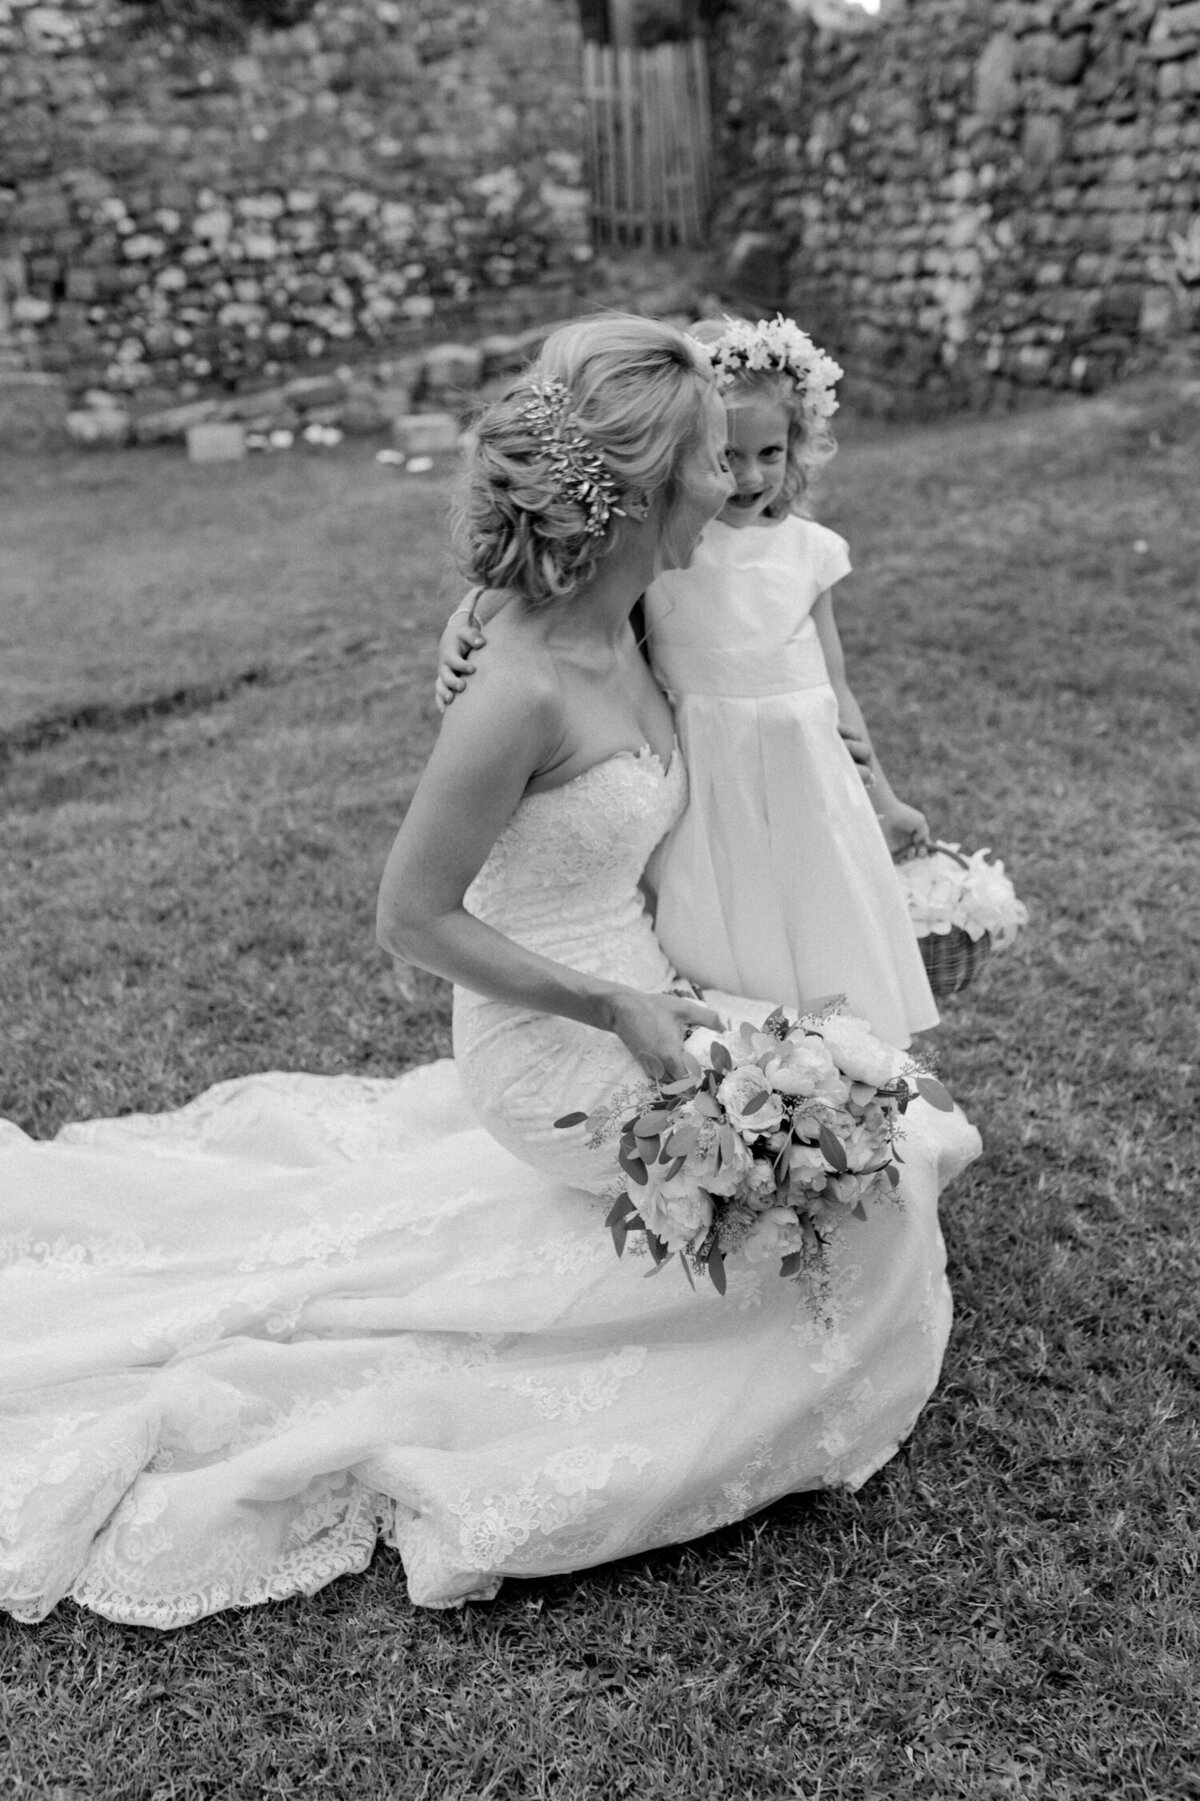 120_Tuscany_Luxury_Wedding_Photographer (135 von 215)_So thankful to be a luxury destination wedding photographer in Tuscany! Claire and James invited their beloved family & friends from London to their luxury wedding in Tuscany.